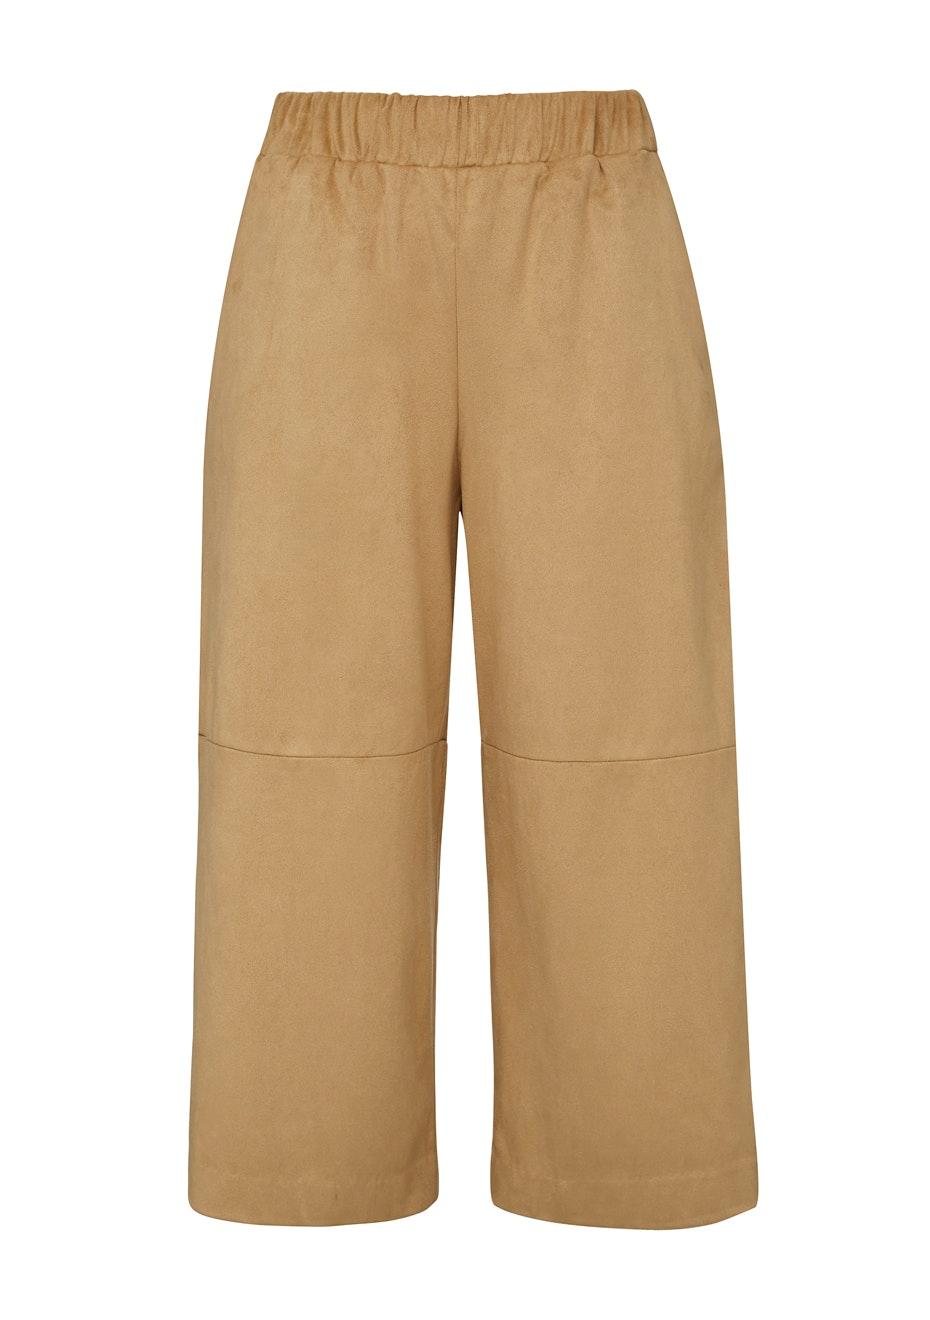 French Connection - Faux Suede Culottes - Tan